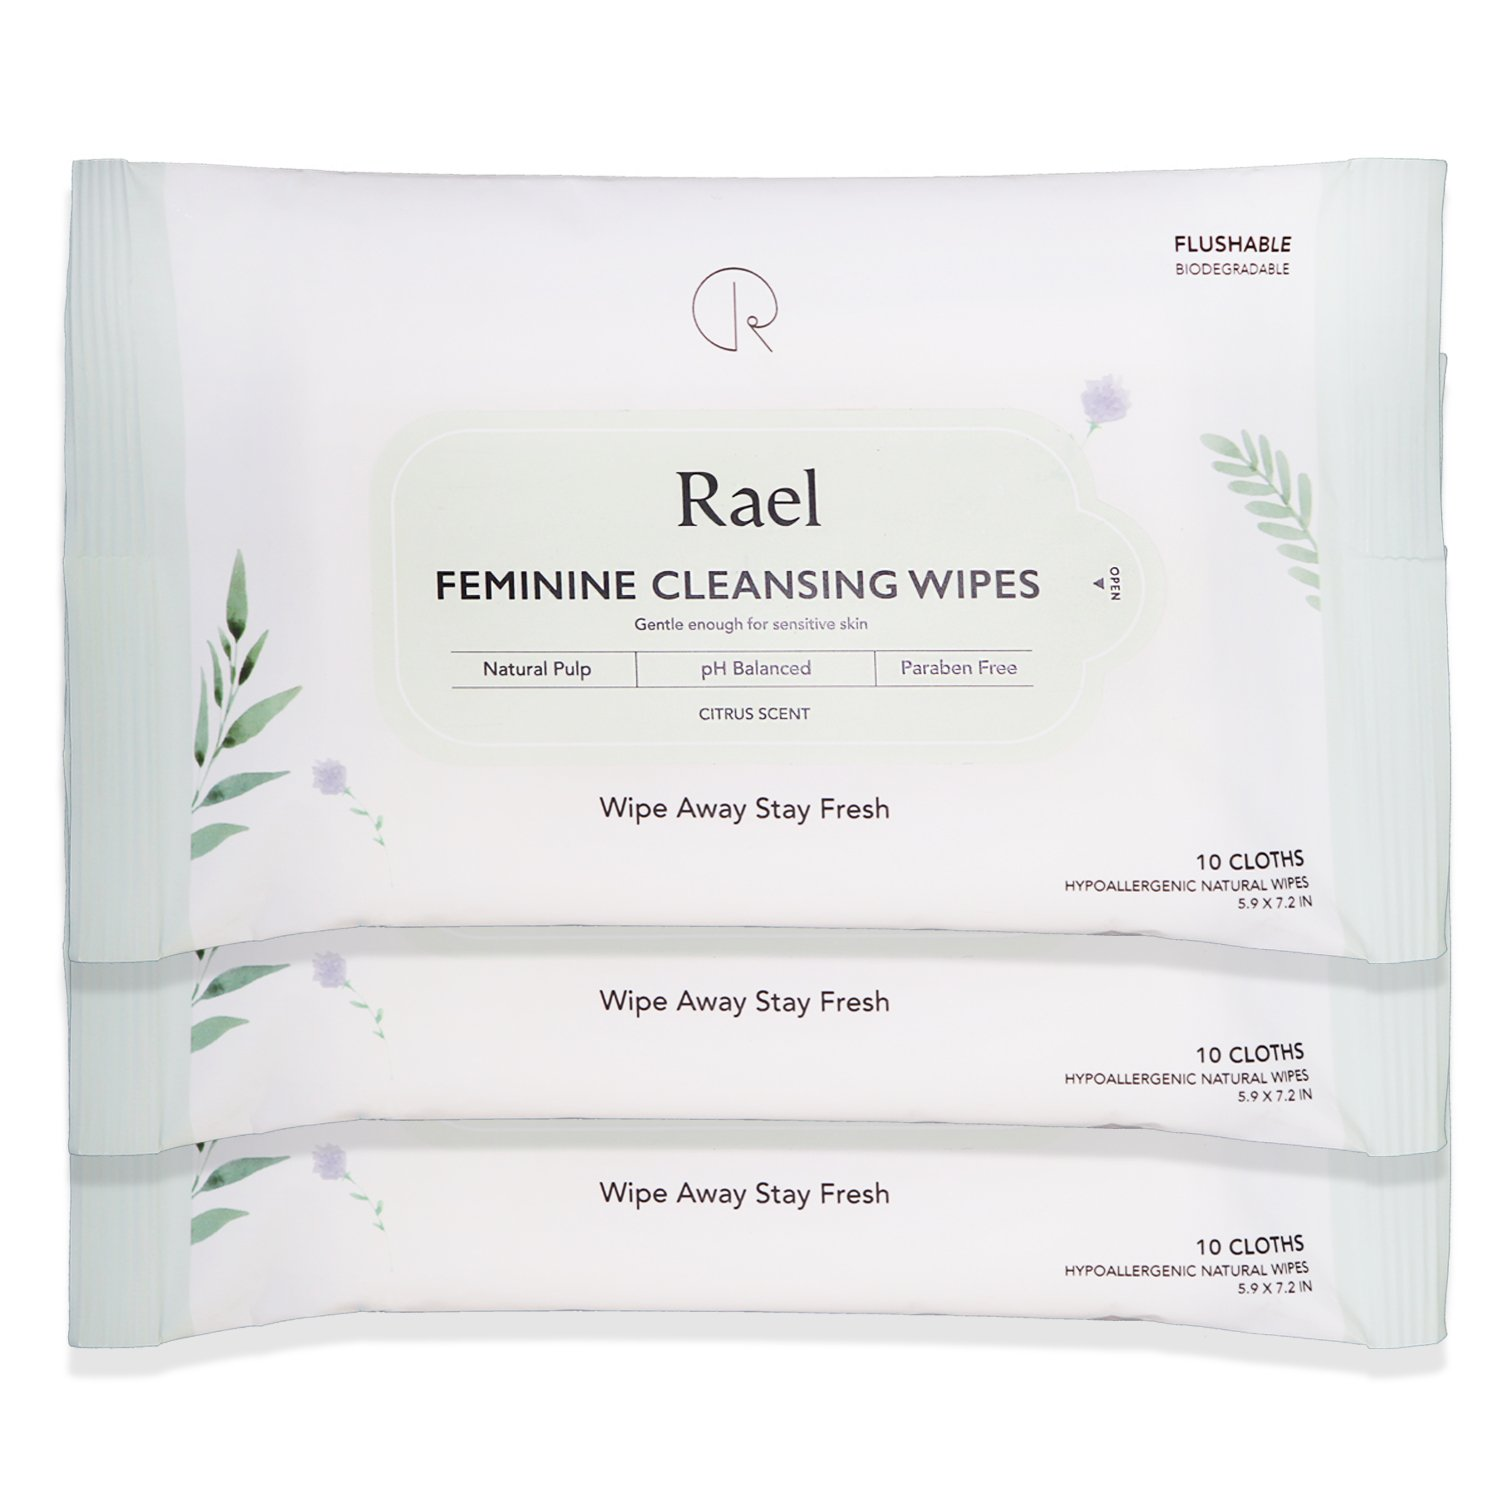 Rael Feminine Wipes with natural ingredients, use day or night, flushable, pH-balanced, gentle and safe on the skin. (3 Pack)